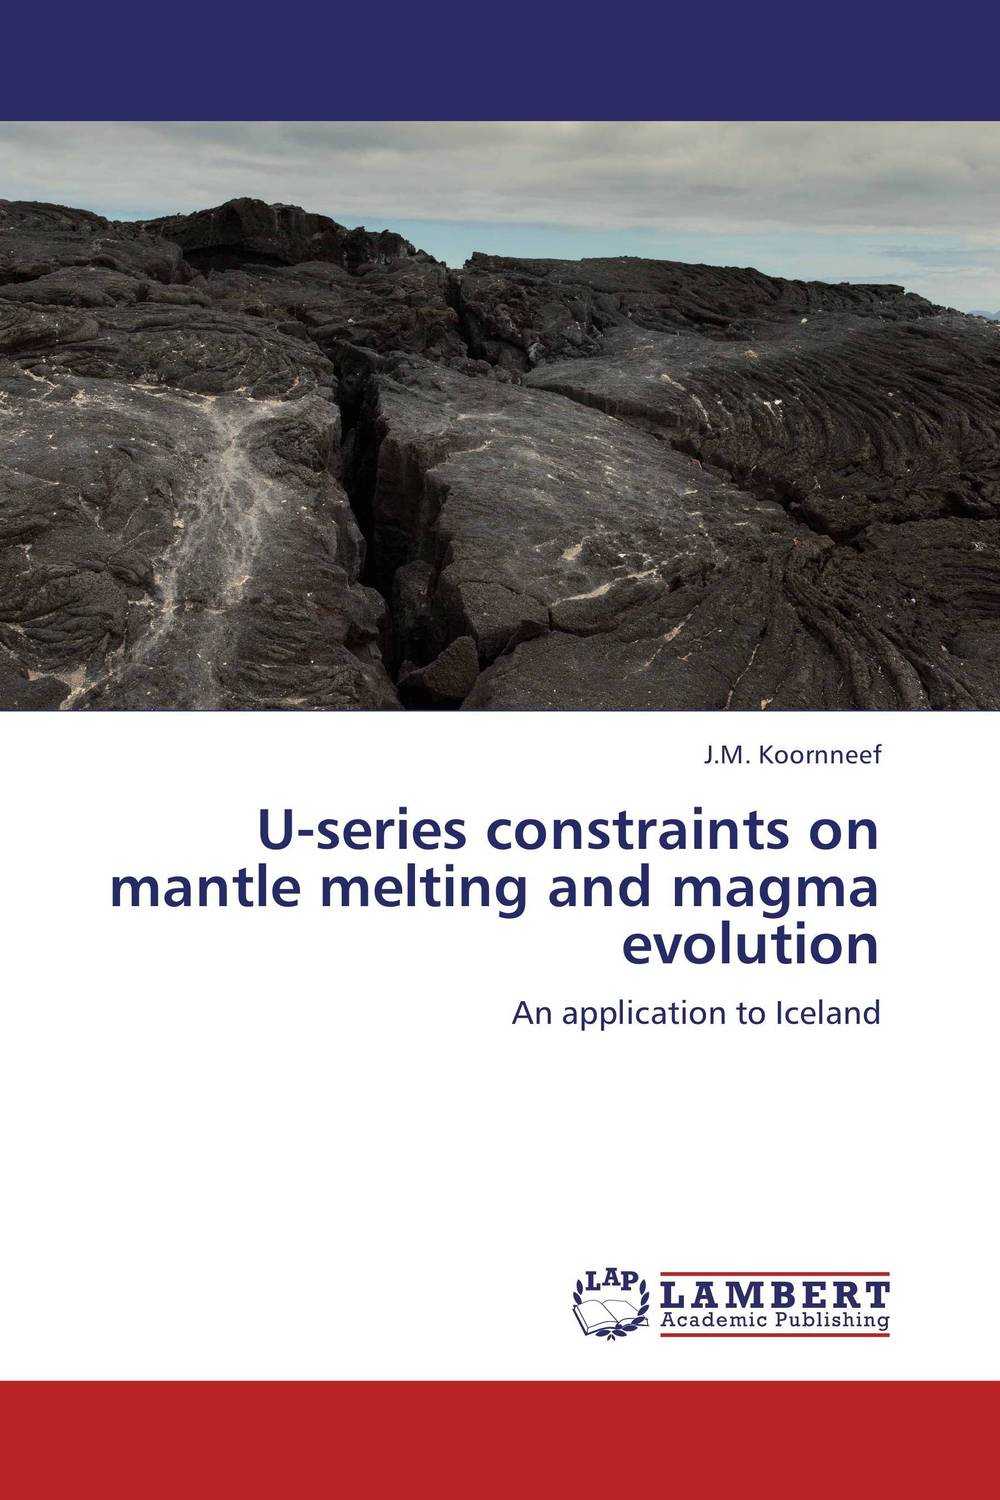 U-series constraints on mantle melting and magma evolution management dilemmas the theory of constraints approach to problem identification and solutions the crc press series on constraints management